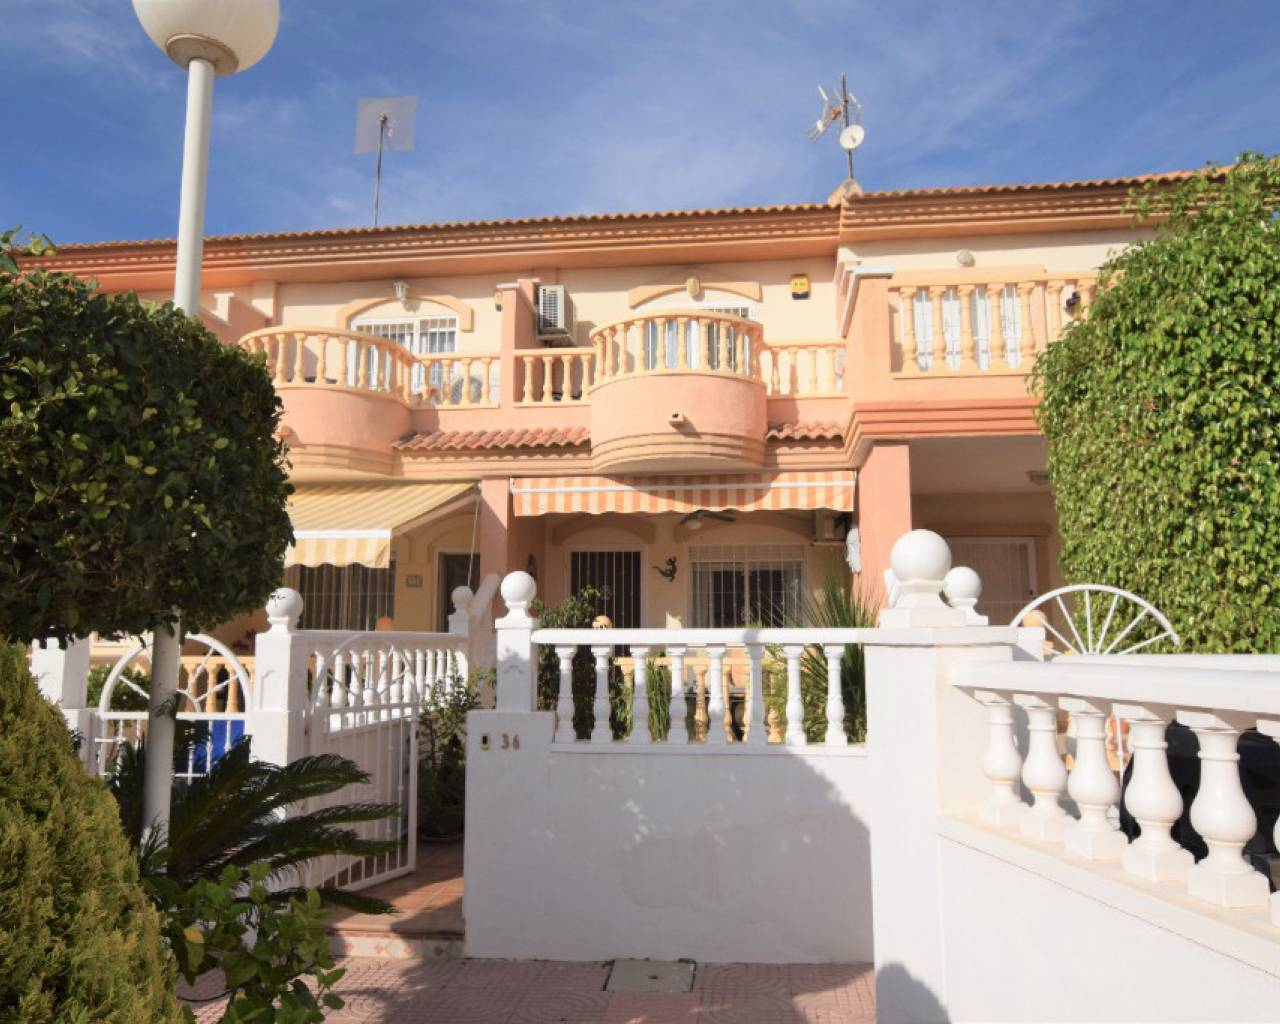 Townhouse - Sale - Alicante - Ciudad Quesada